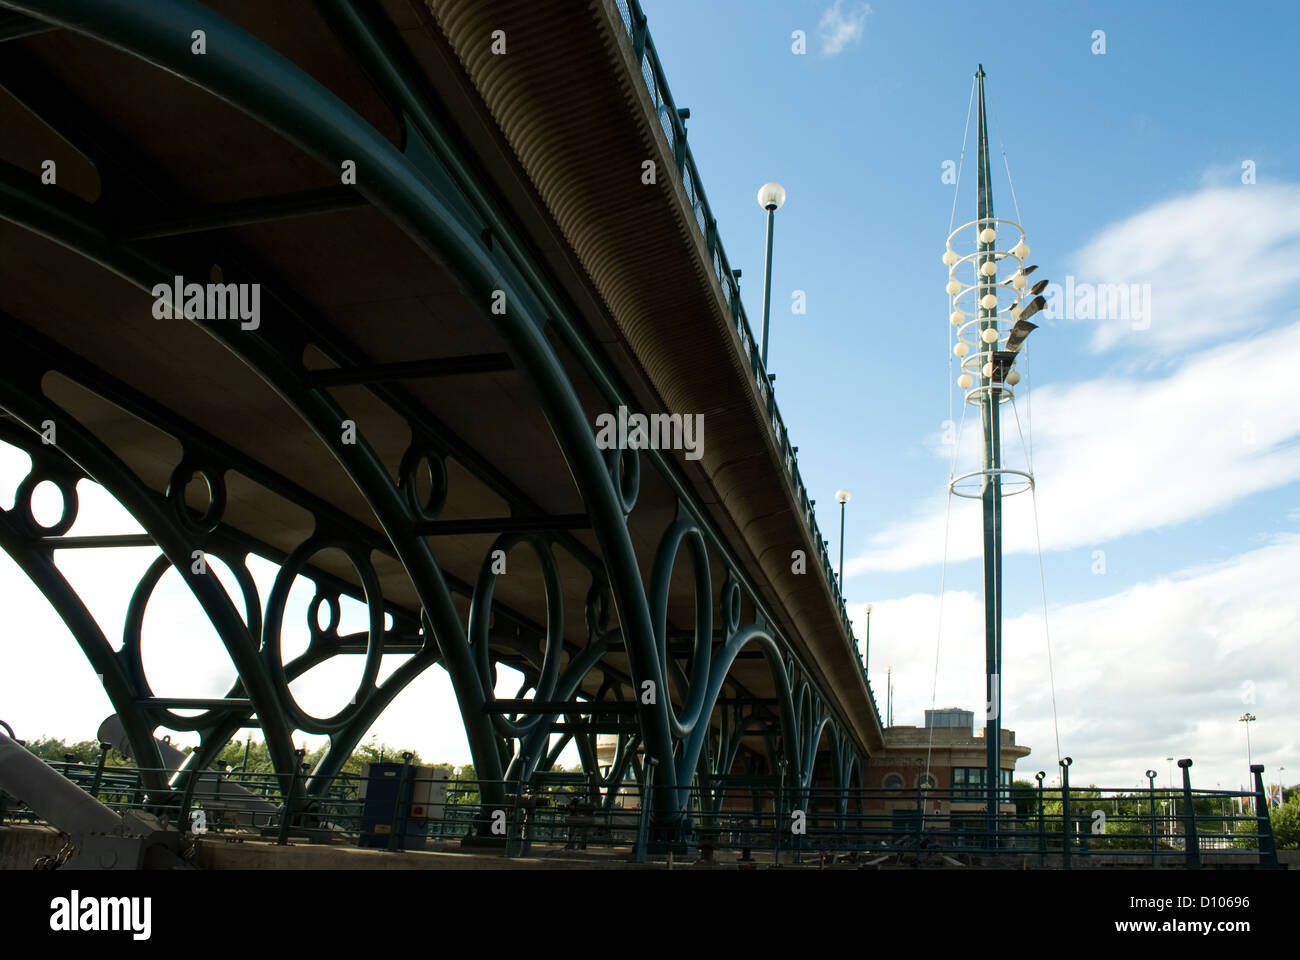 Bridge over Teesside Barrage at Stockton-on-Tees, - Stock Image